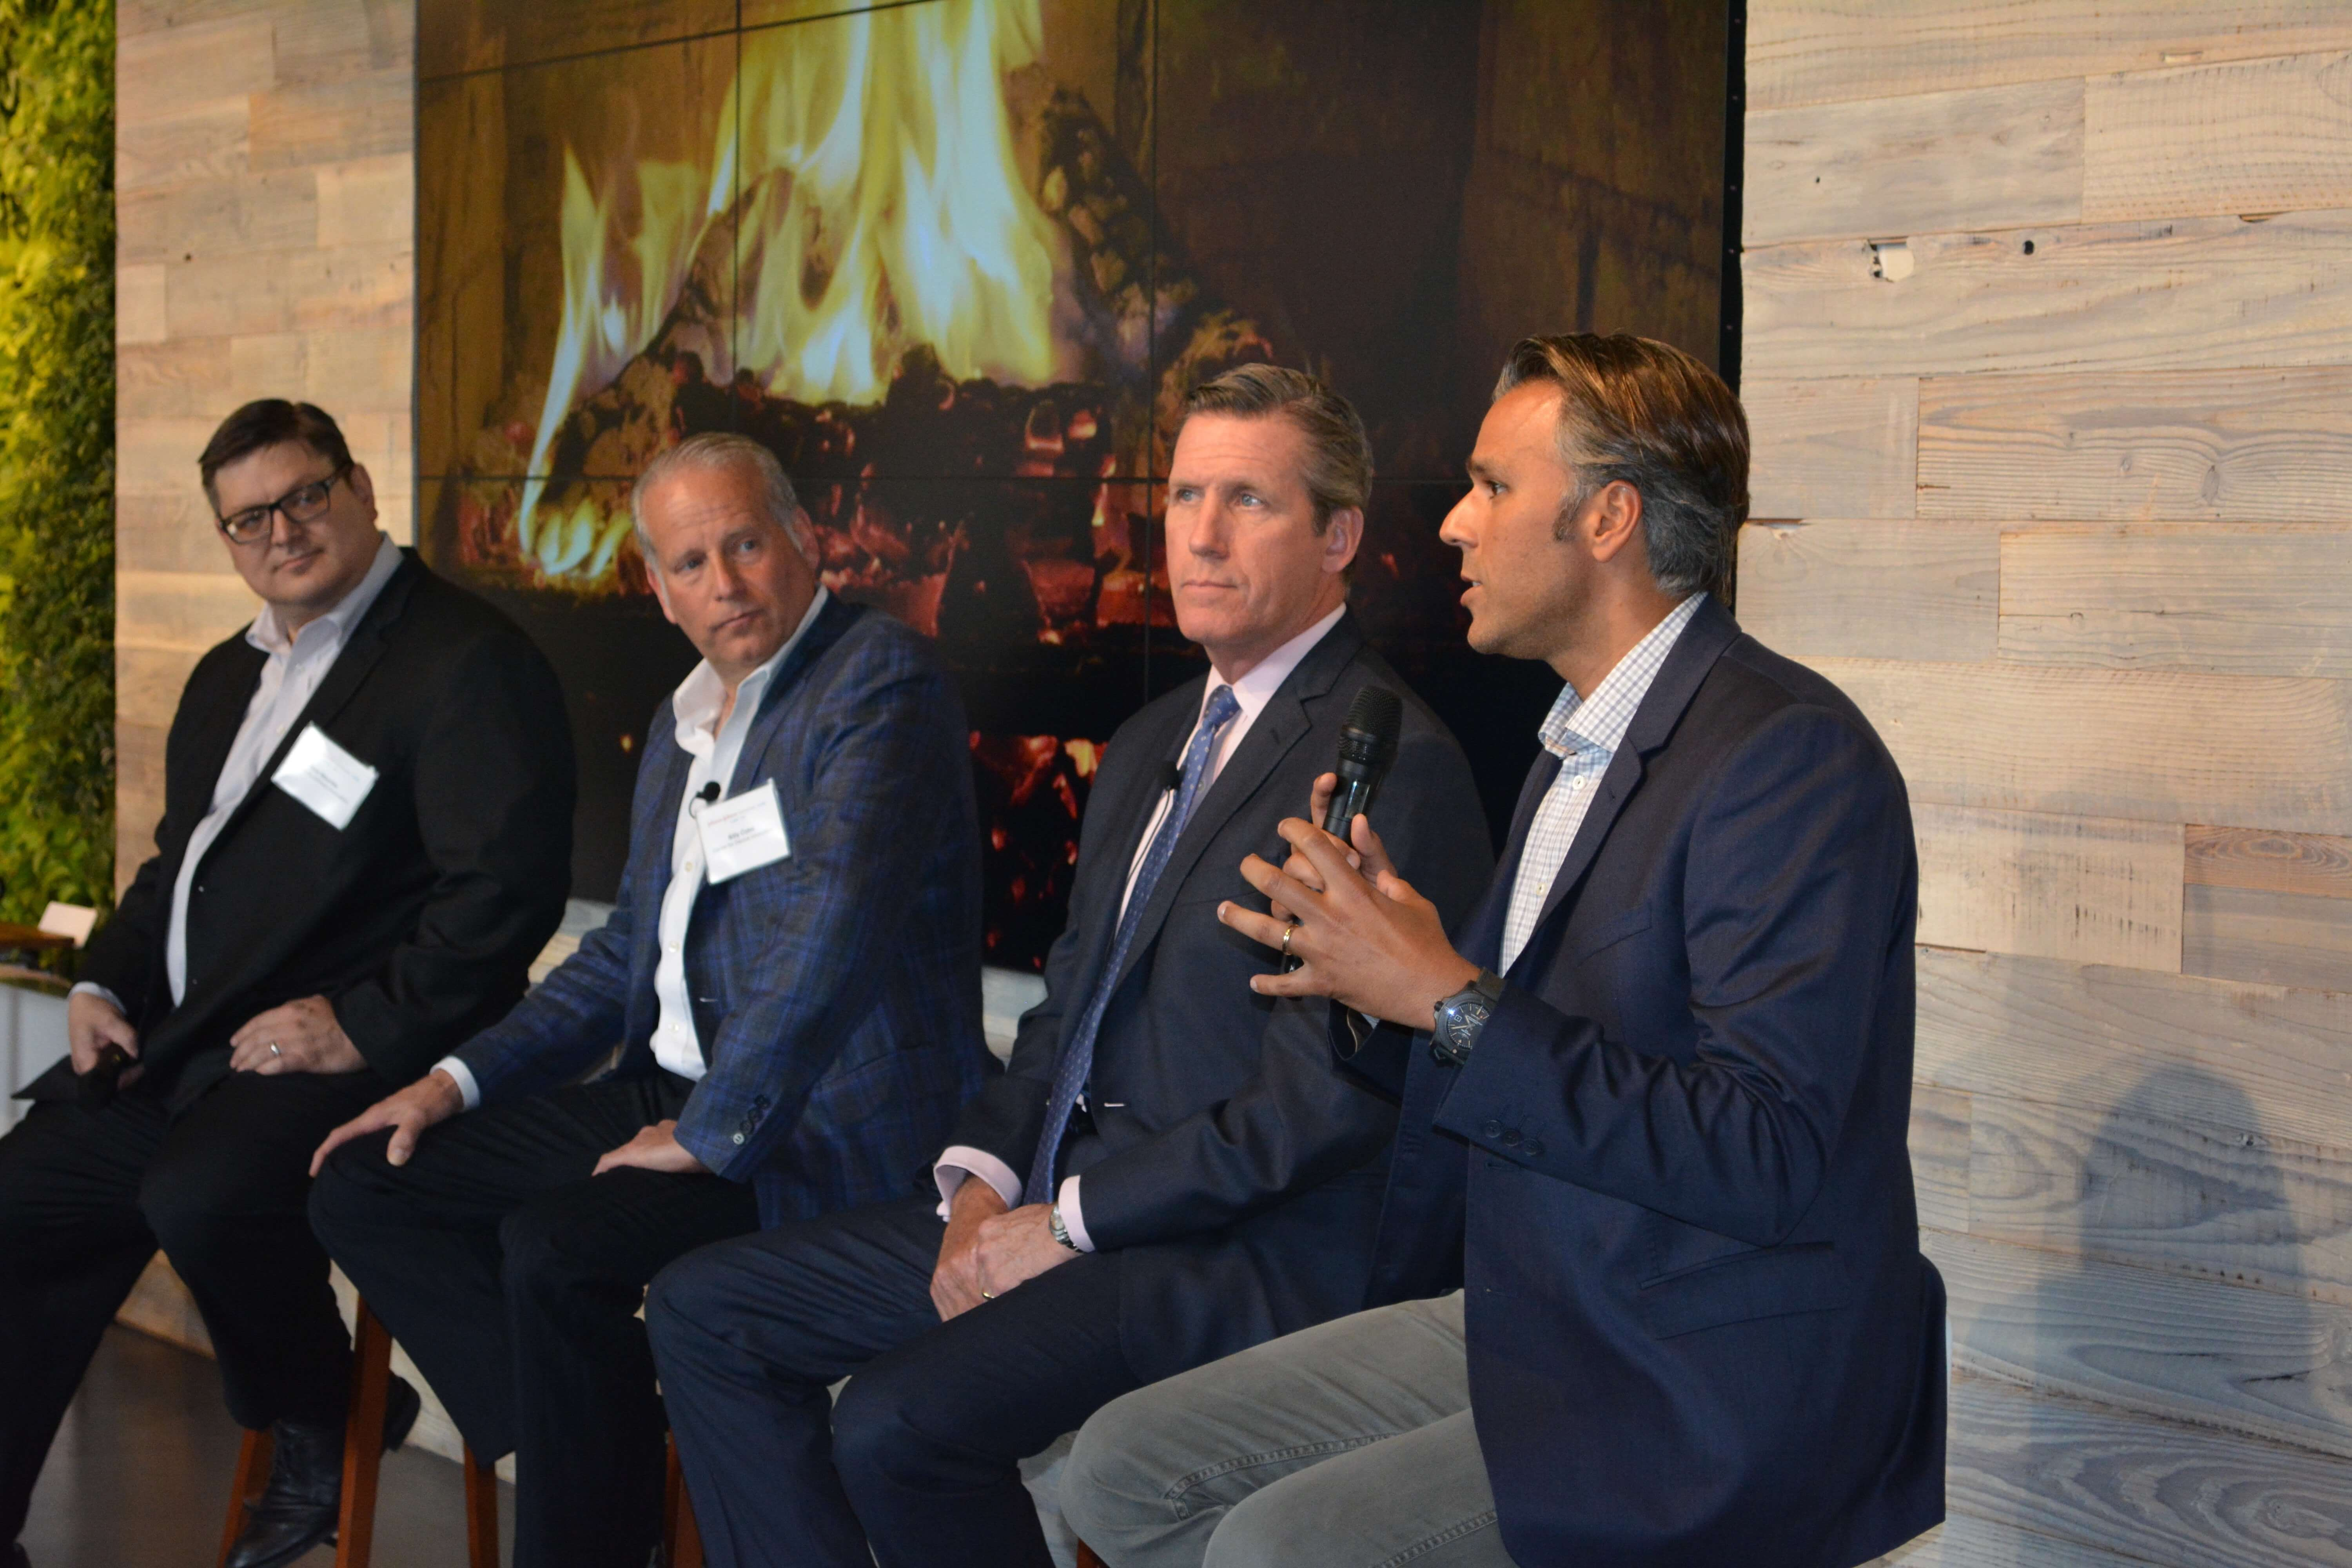 Arjun Desai, right, talks about medical devices with Johnson & Johnson's Mourlas and Cohn, and William McKeon, president and CEO of the Texas Medical Center.